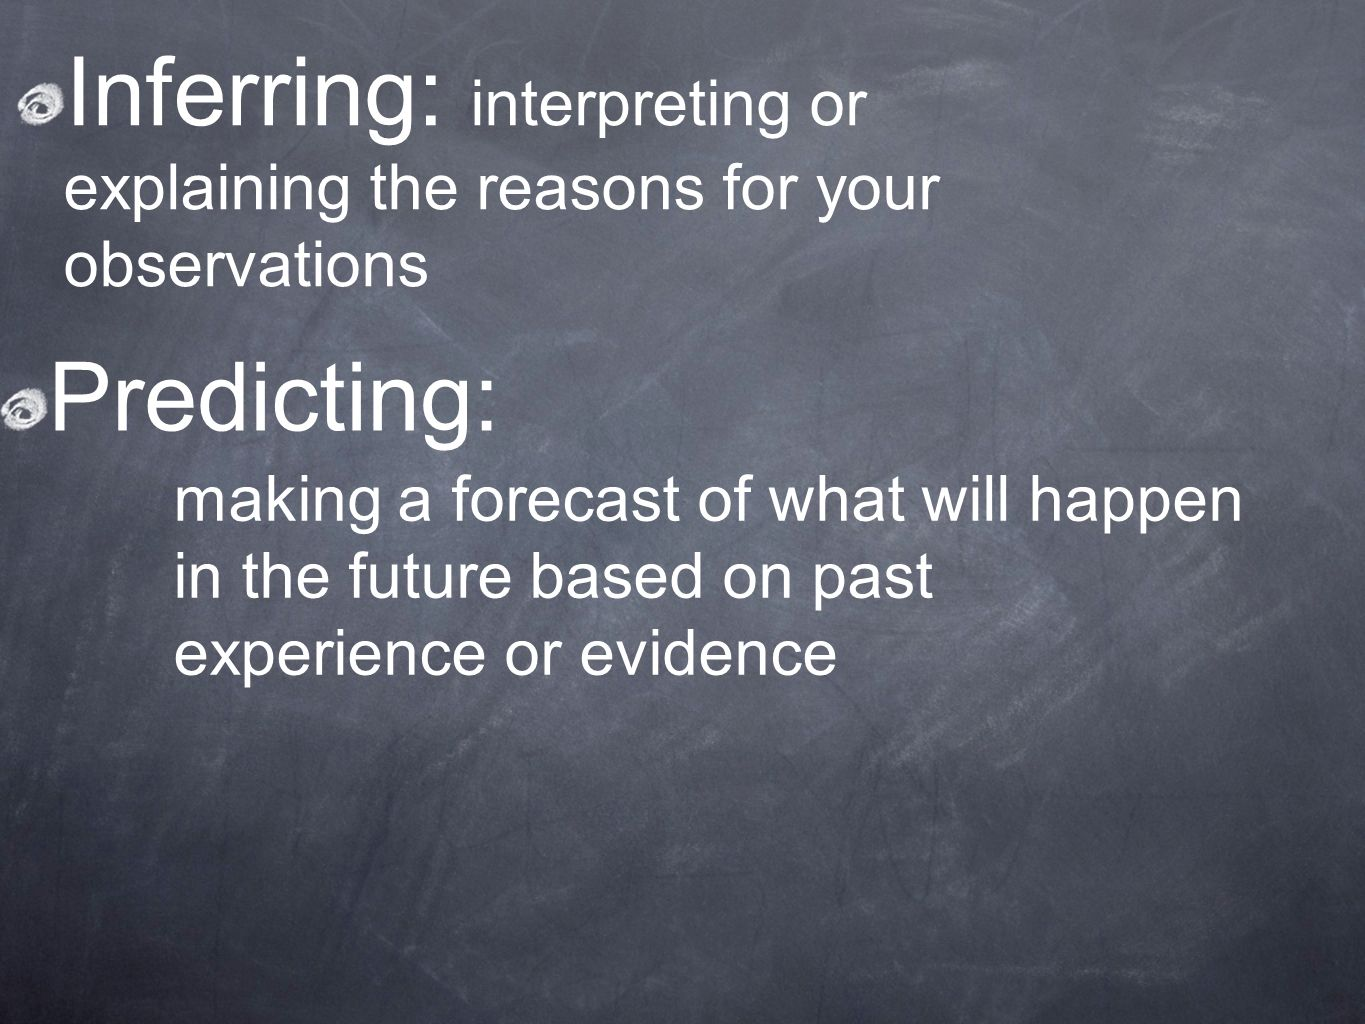 Inferring: interpreting or explaining the reasons for your observations